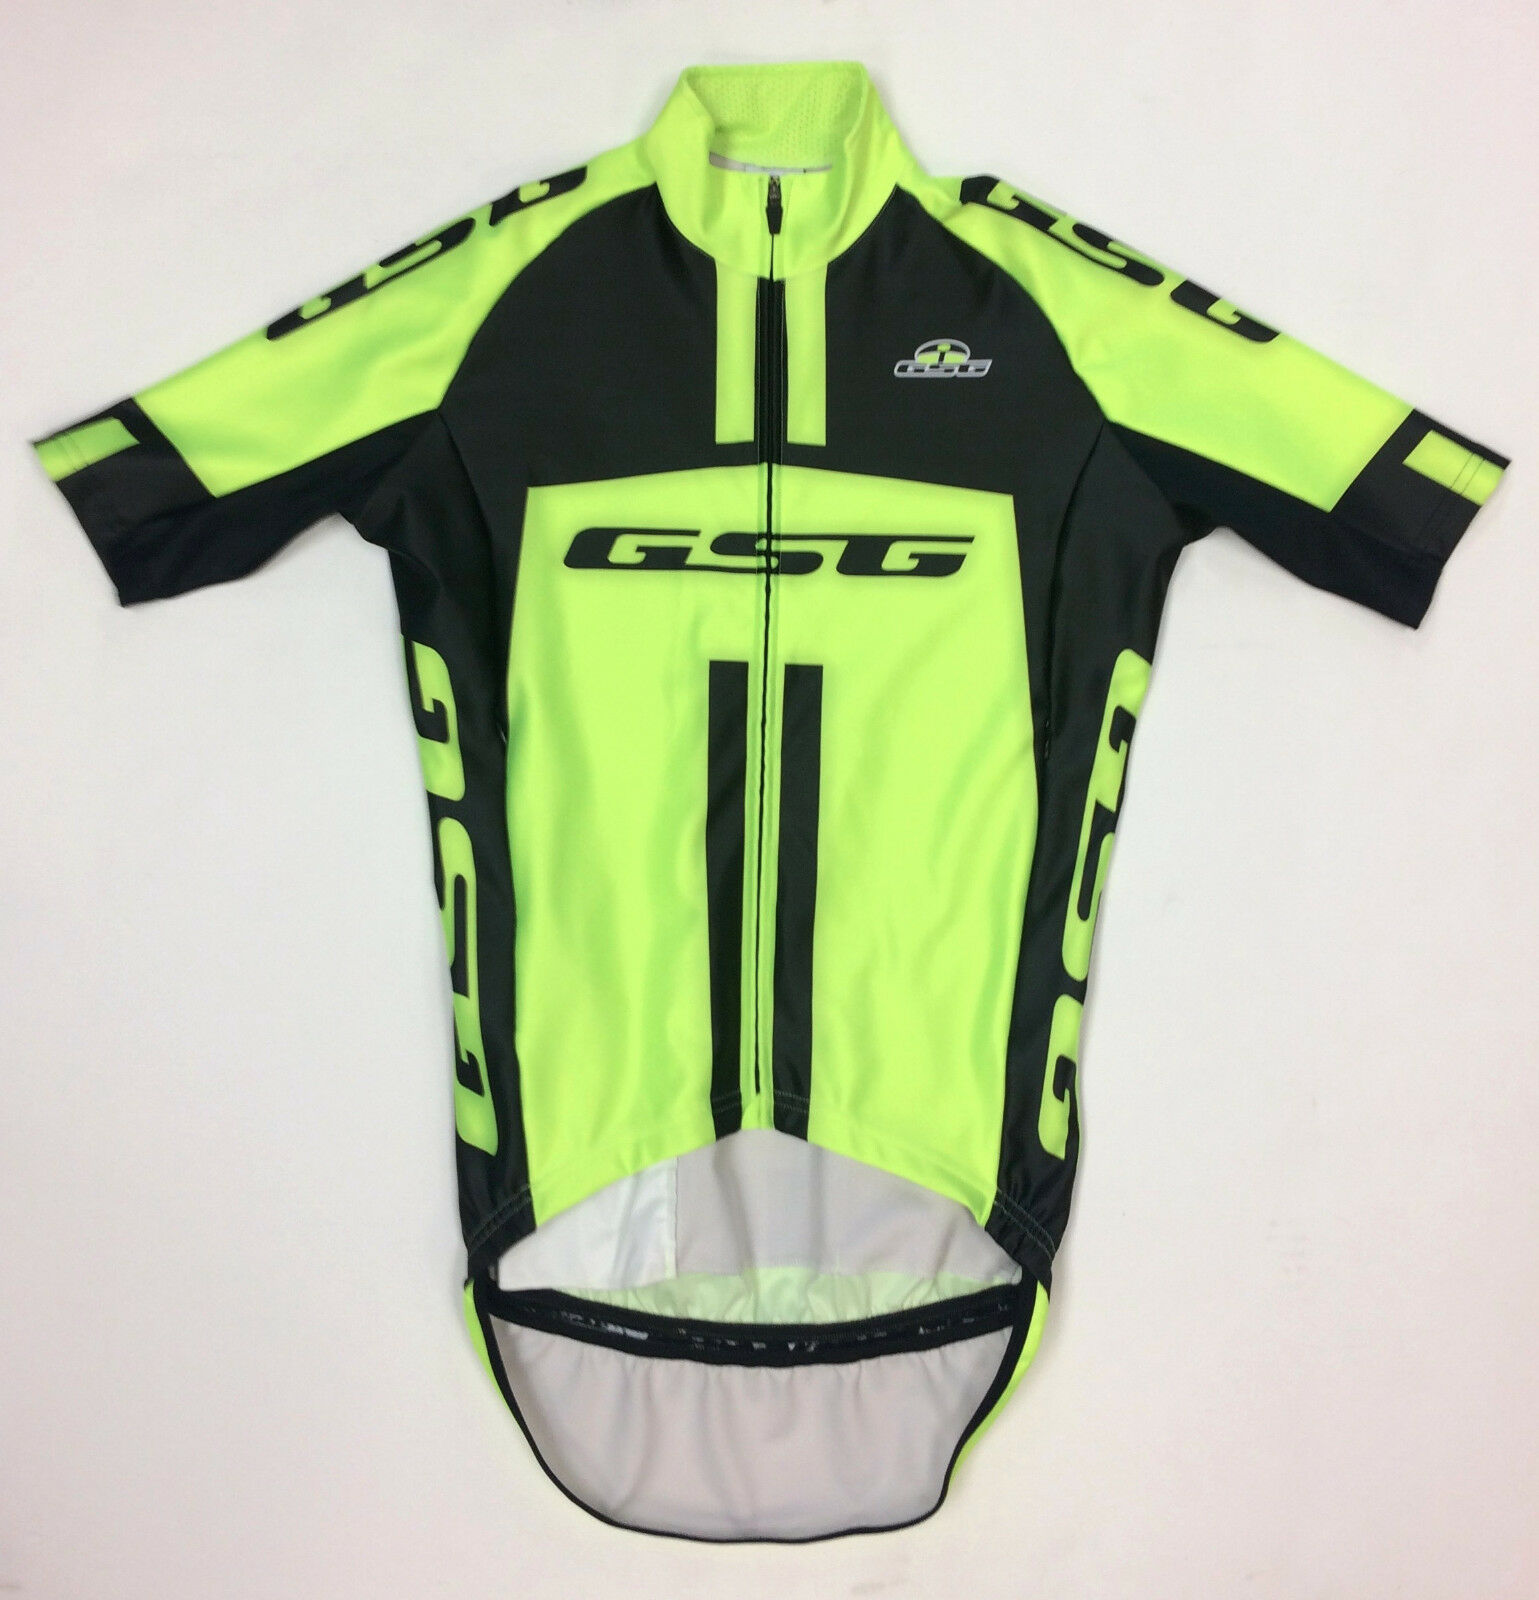 Men's Wind & Water Resistant Short Sleeve CYCLING Jersey Made in  by GSG